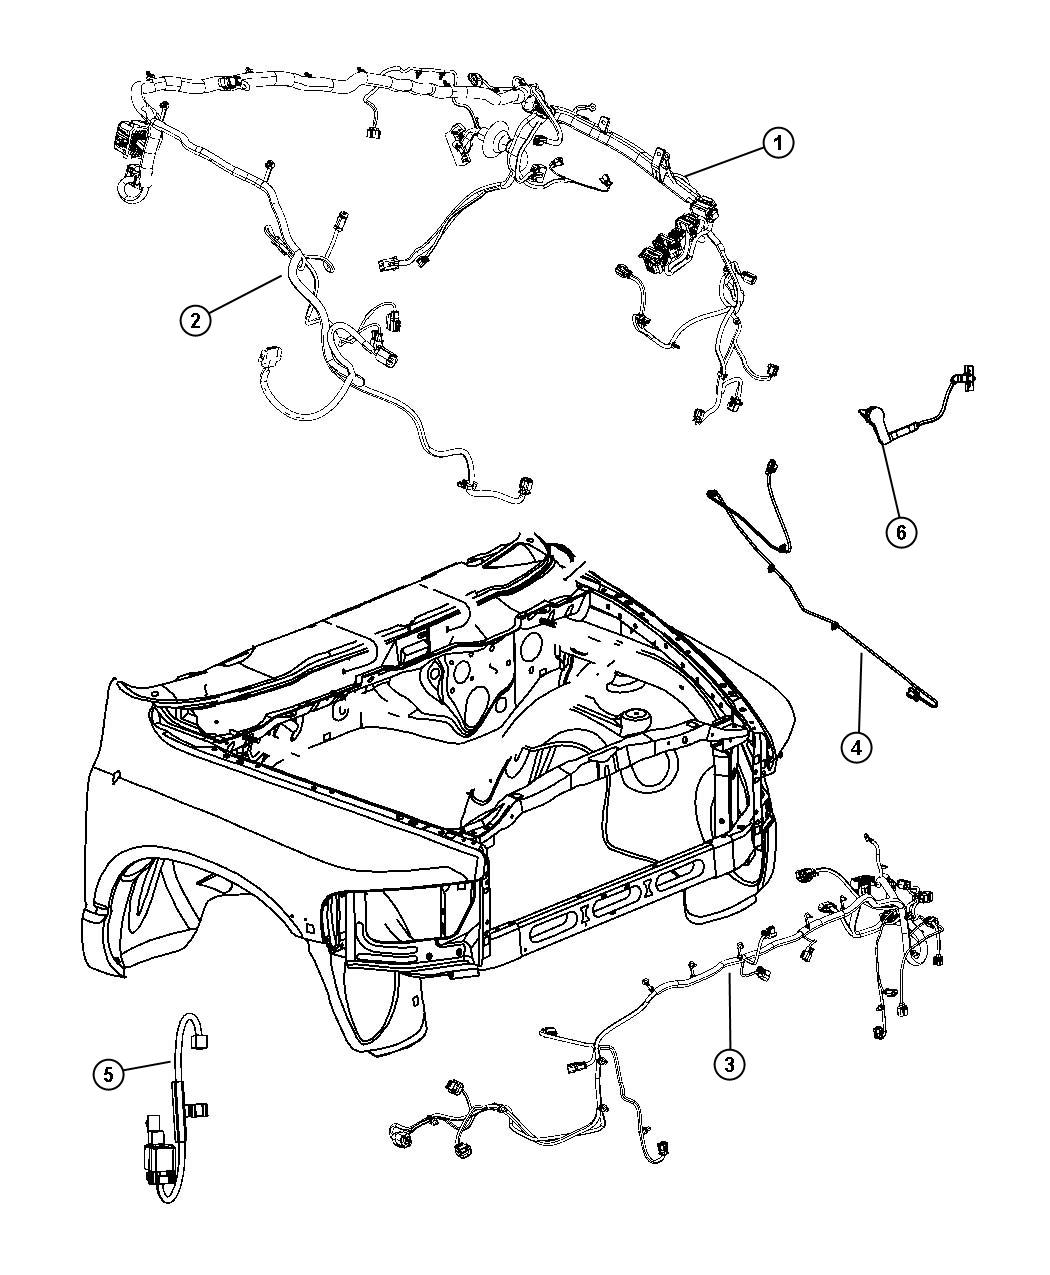 Dodge Ram 3500 Wiring. Dash. Left. [man shift-on-the-fly